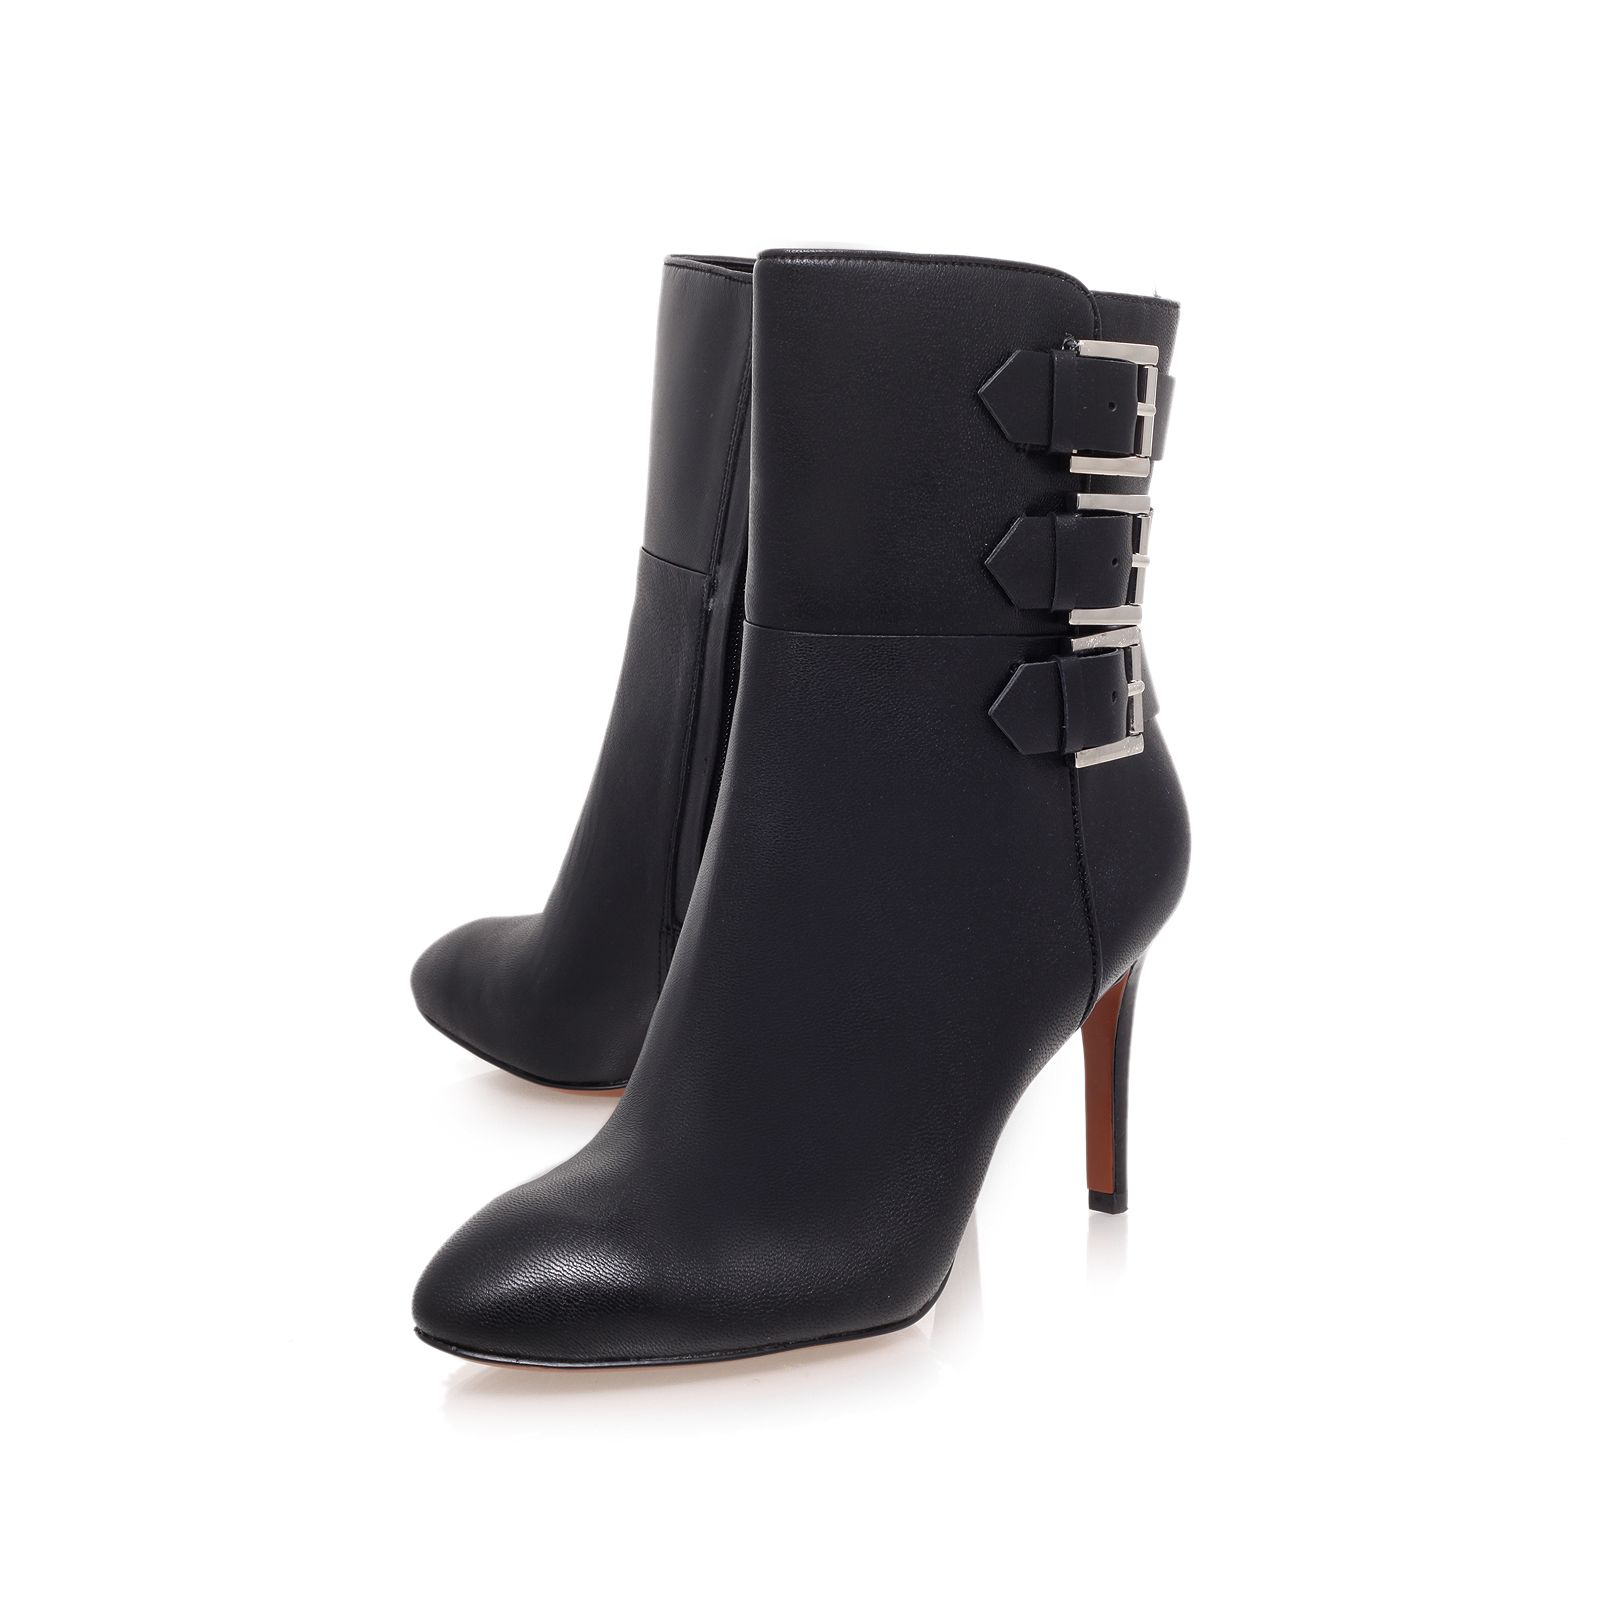 Petti high heel ankle boots